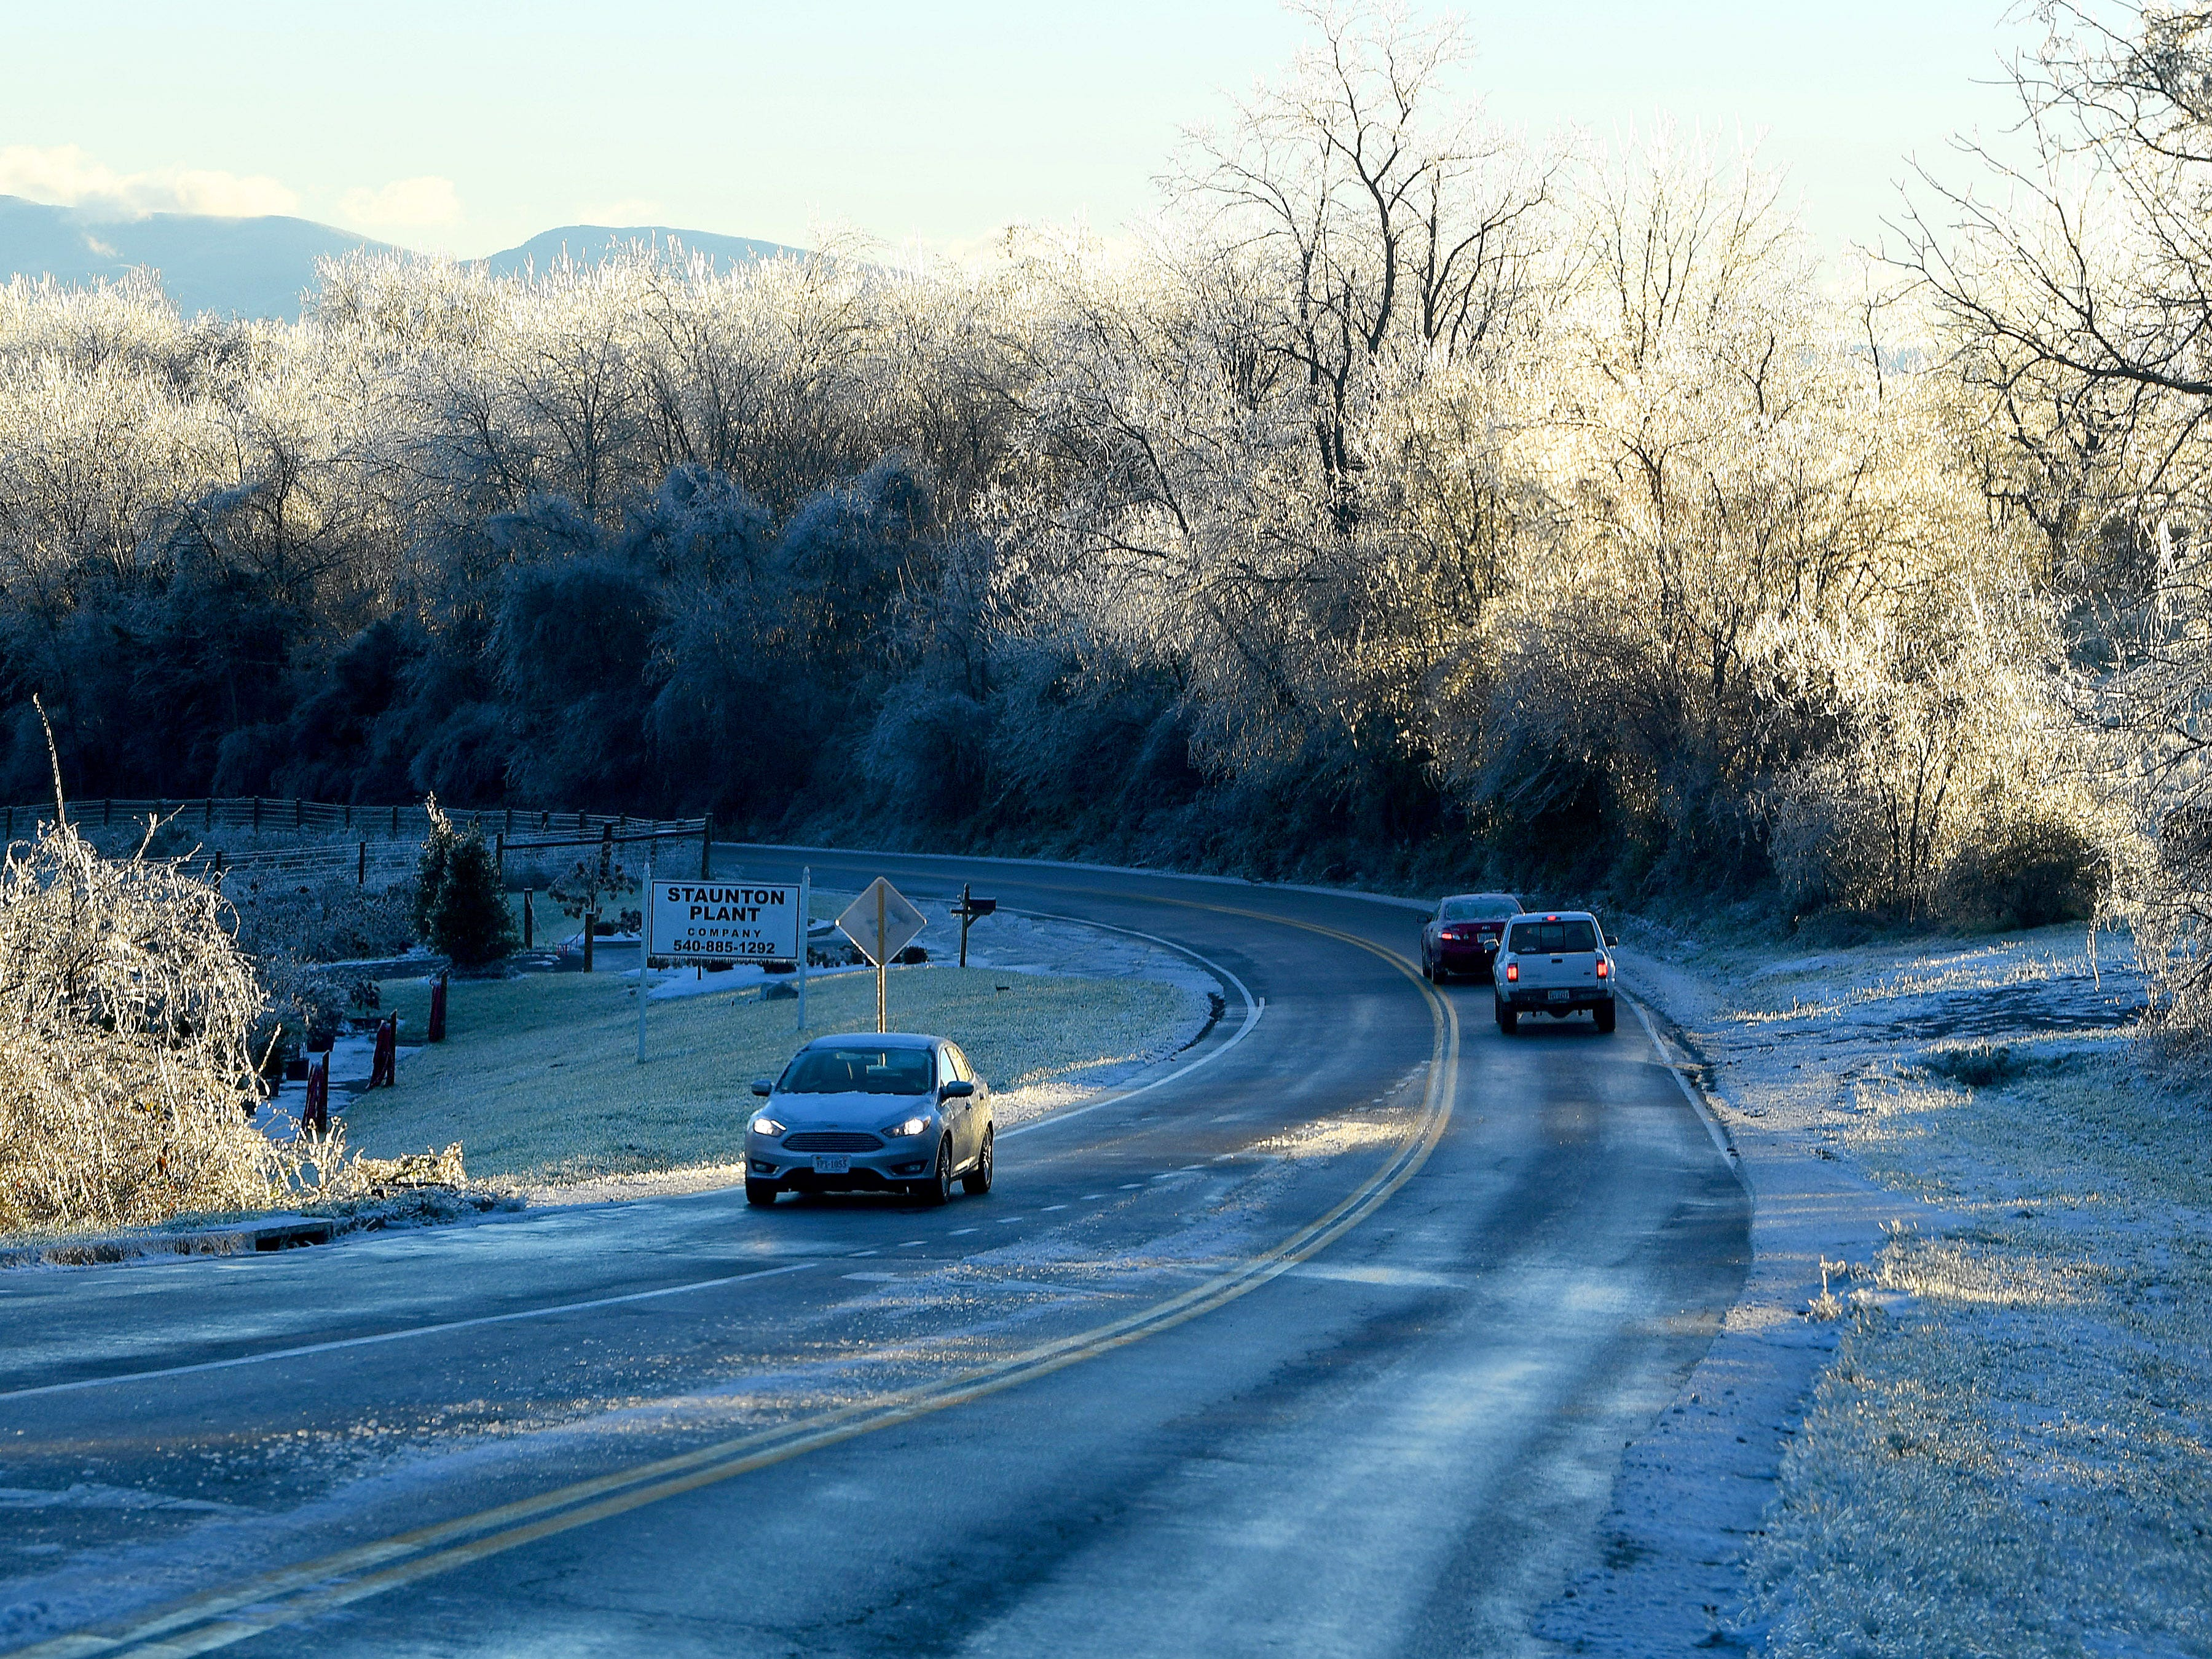 Sunlight gives ice on trees a whitish glow in the backdrop as traffic moves along Frontier Drive in Staunton on an ice-covered Friday morning, Nov. 16, 2018.